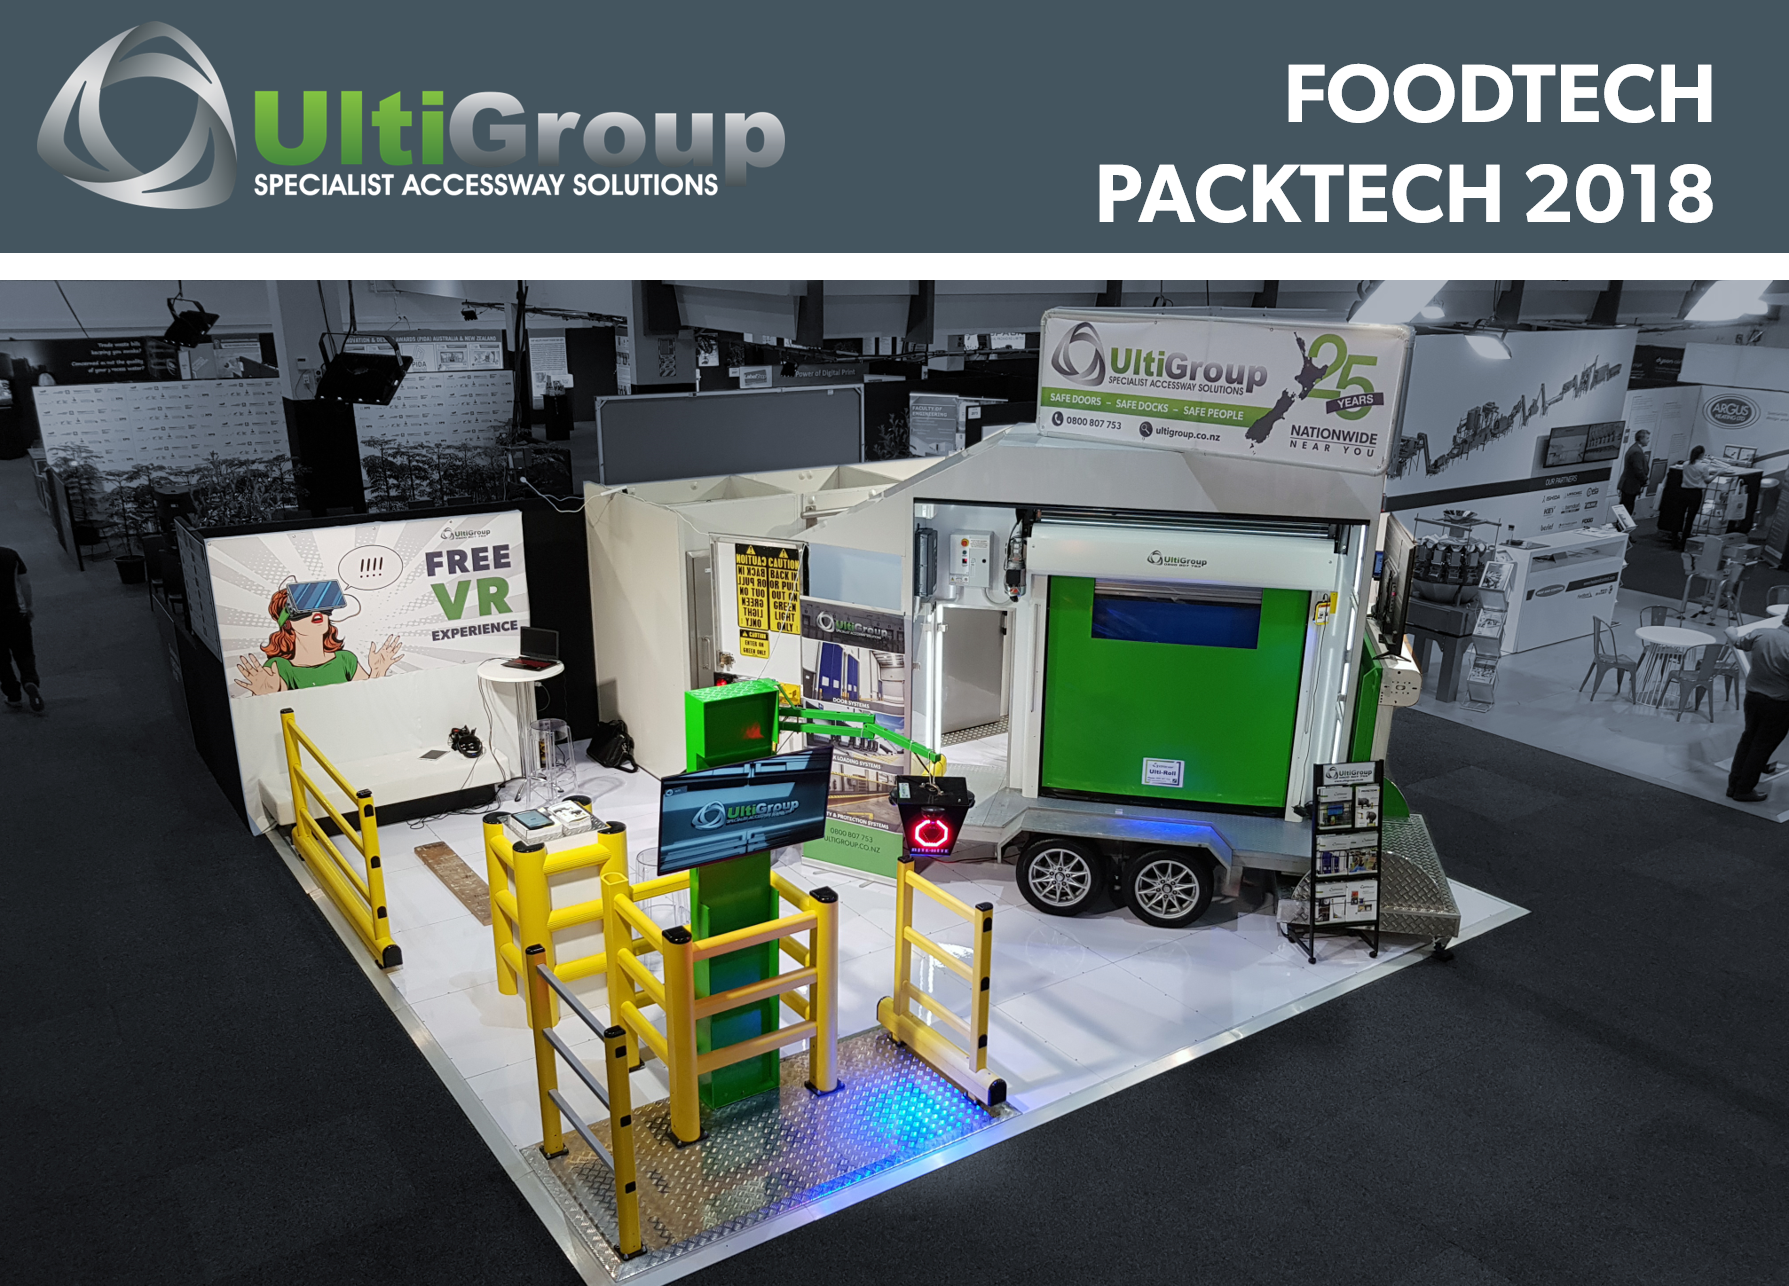 Foodtech Packtech 2018 - Our Heritage of Innovation